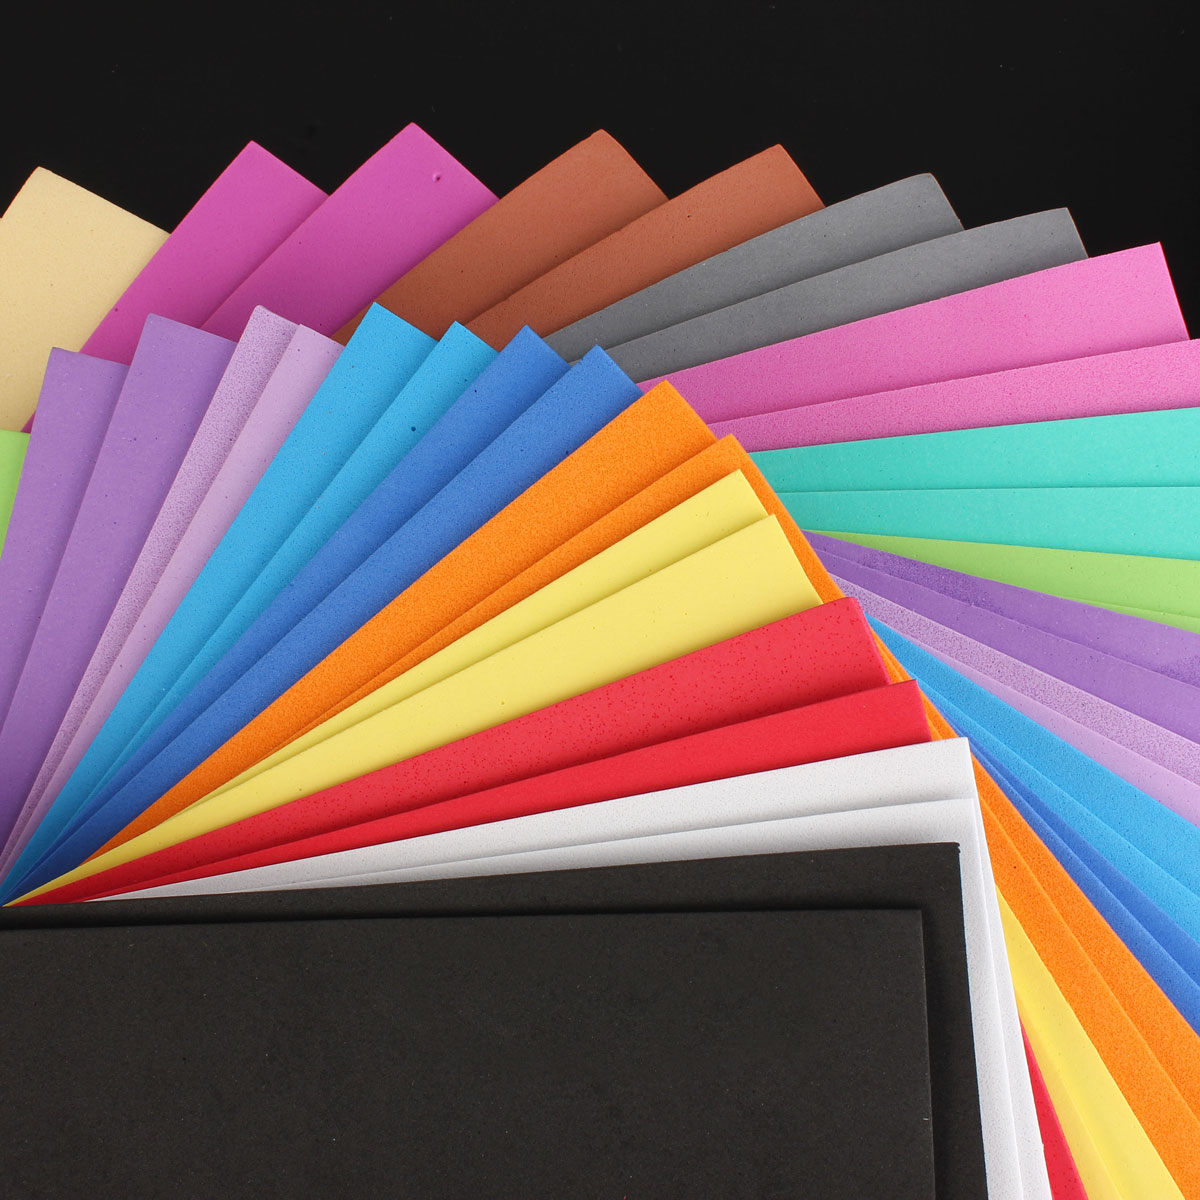 32PCS A4 2mm Foam Sheets Sponge Paper DIY Foam Flower Craft Material DIY Jewelry 16 Color